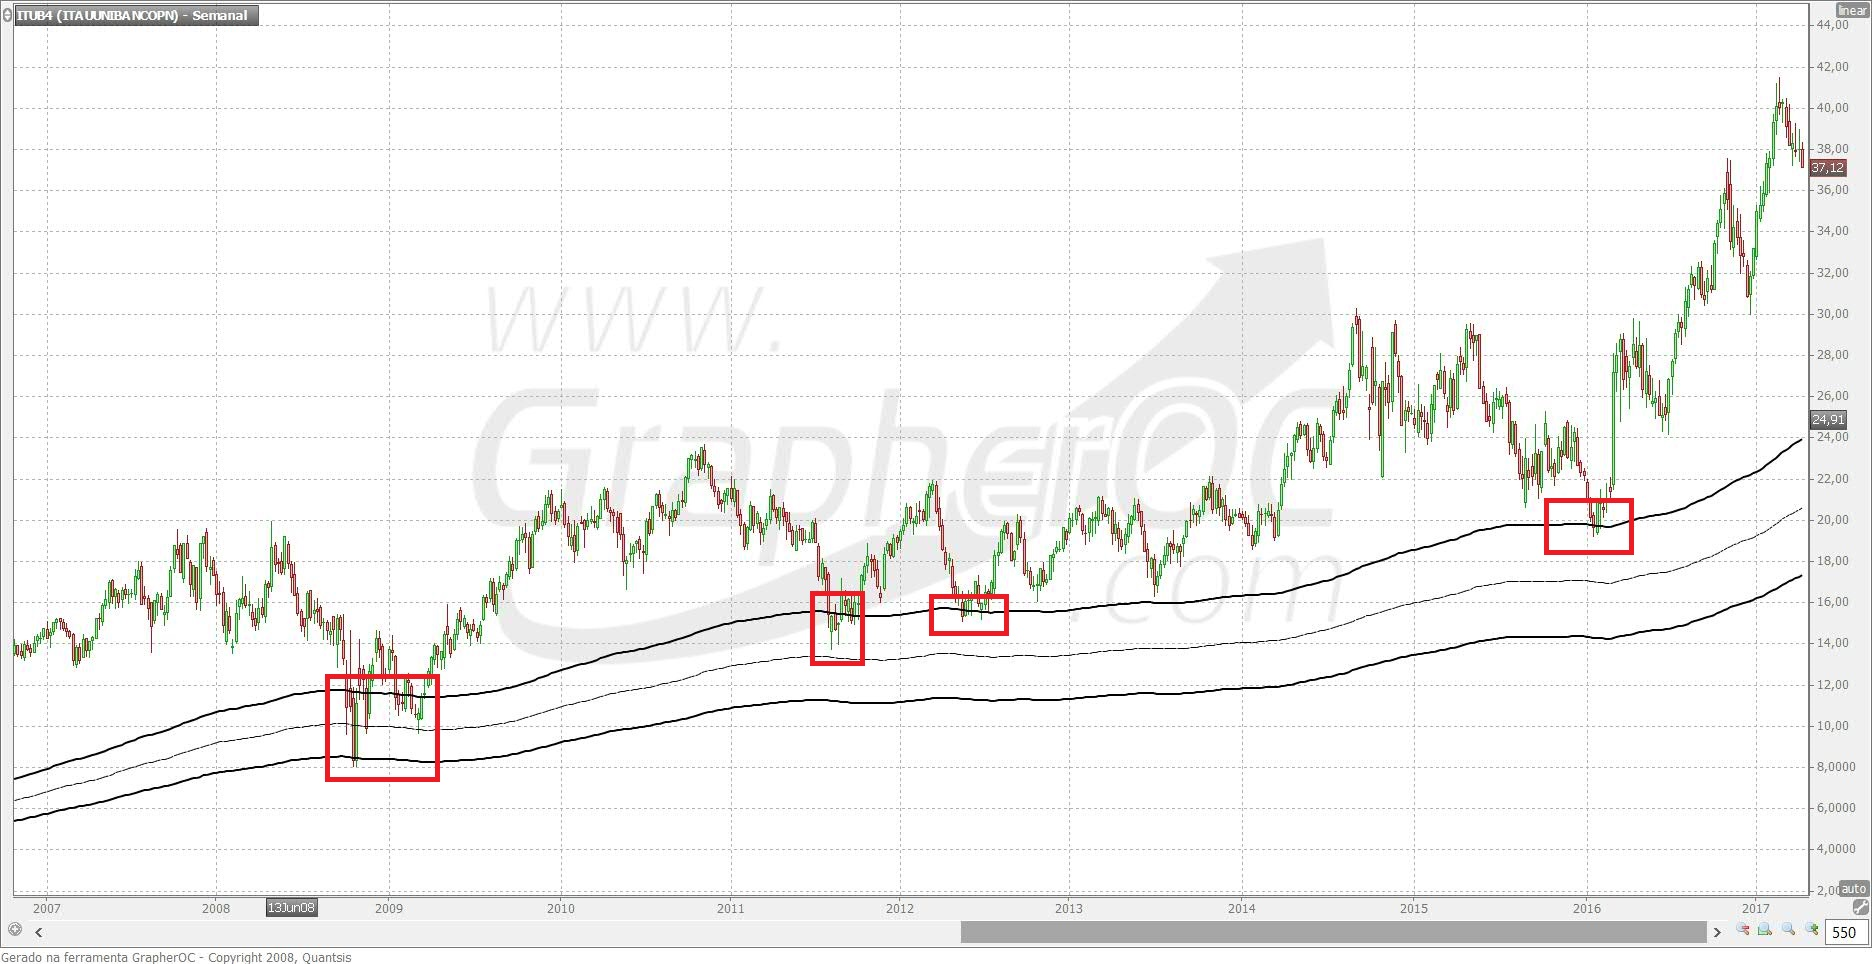 buy and hold vale la pena